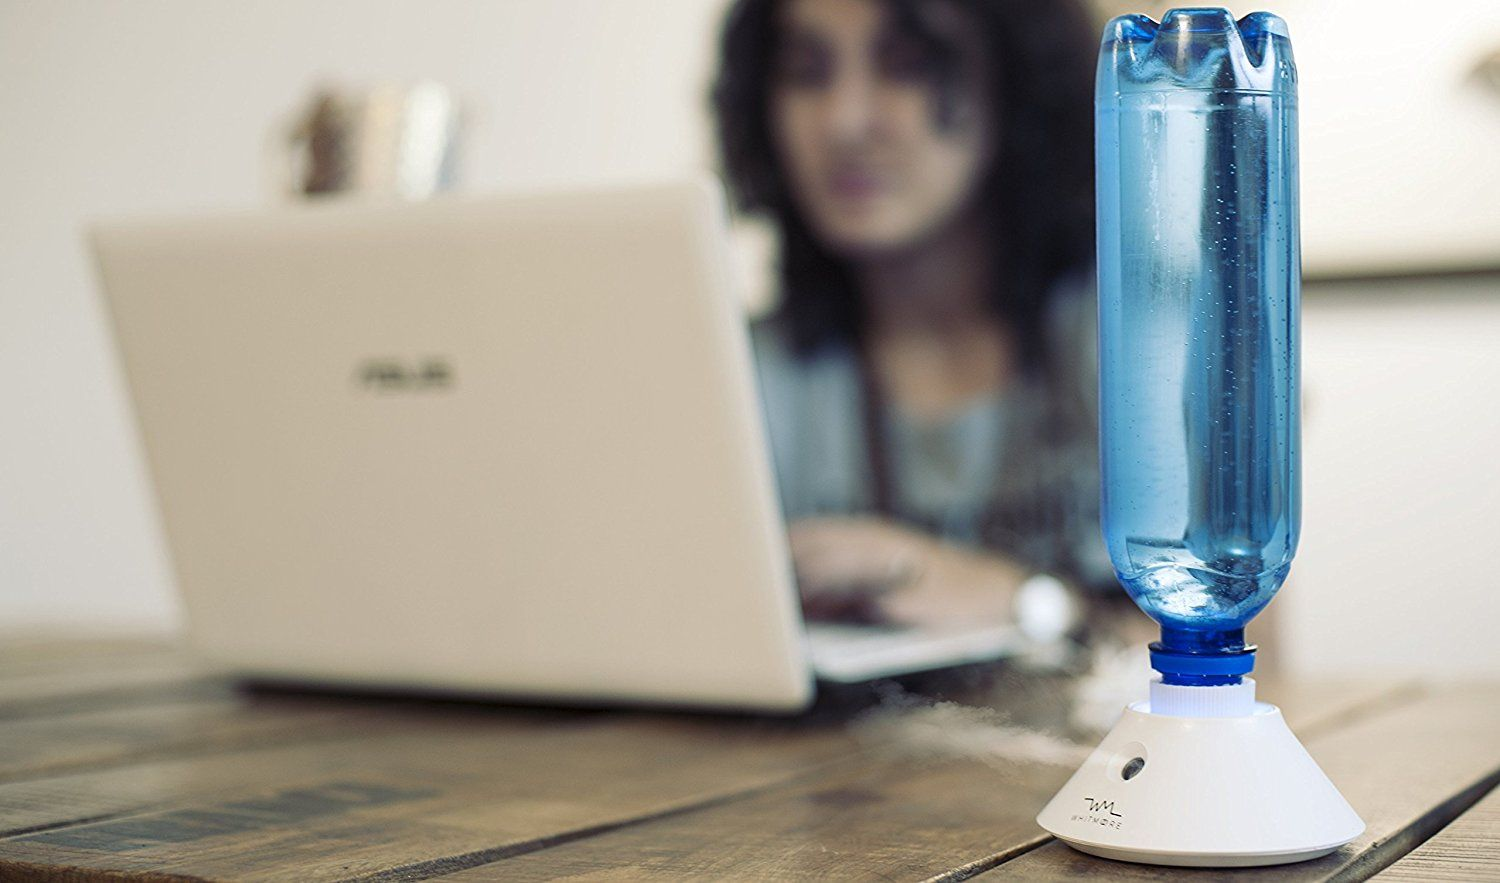 Portable Cool Mist Personal Humidifiers Usb Ed Whisper Quiet Ultrasonic Water Bottle